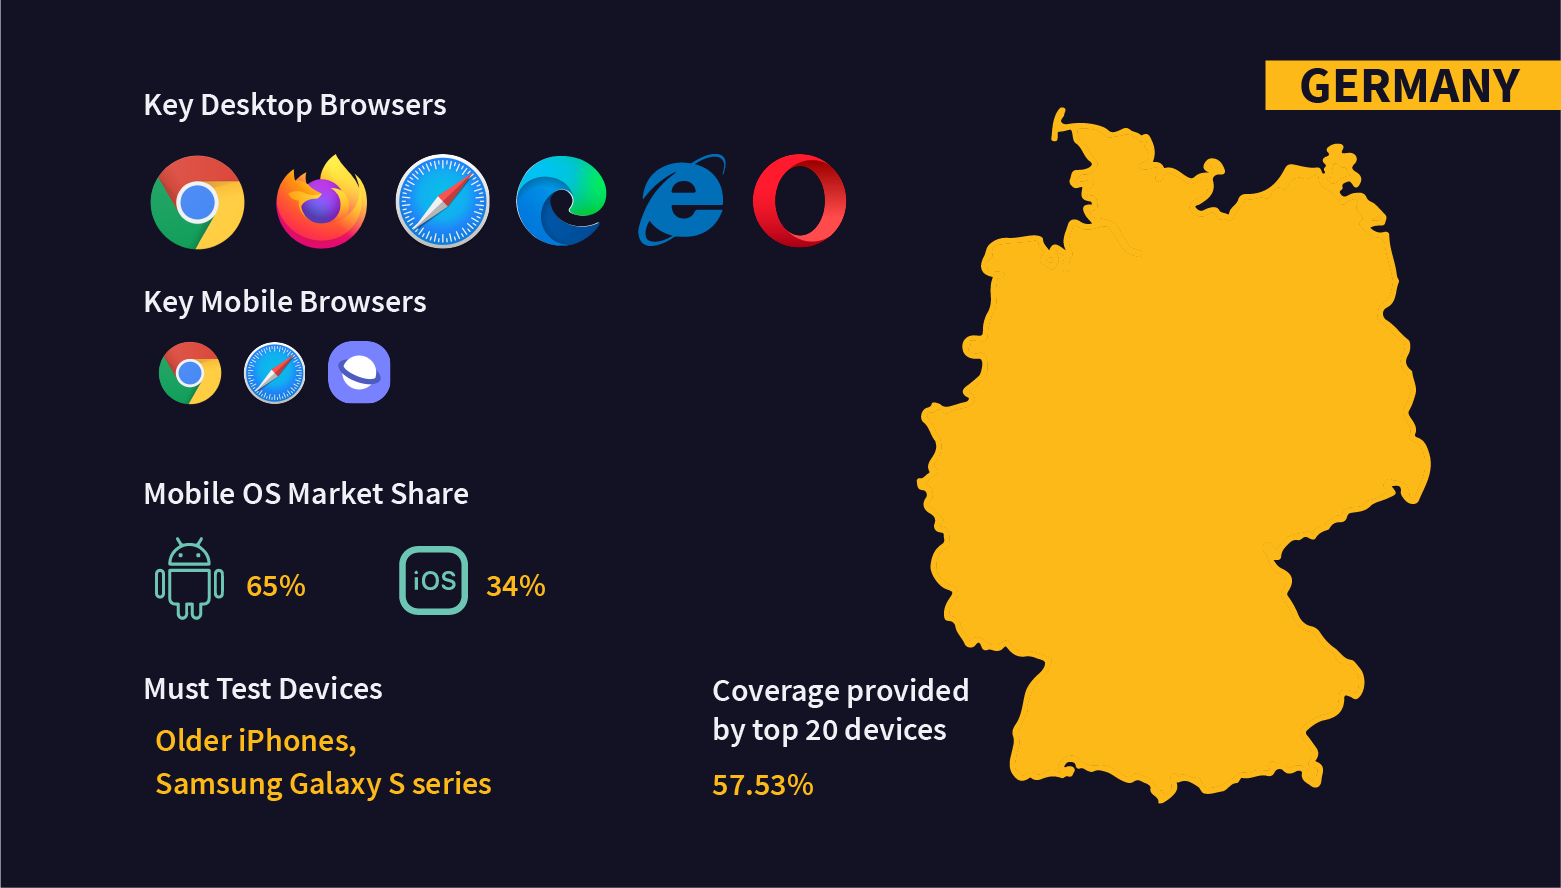 Fragmentation in OS, browsers, and devices in Germany